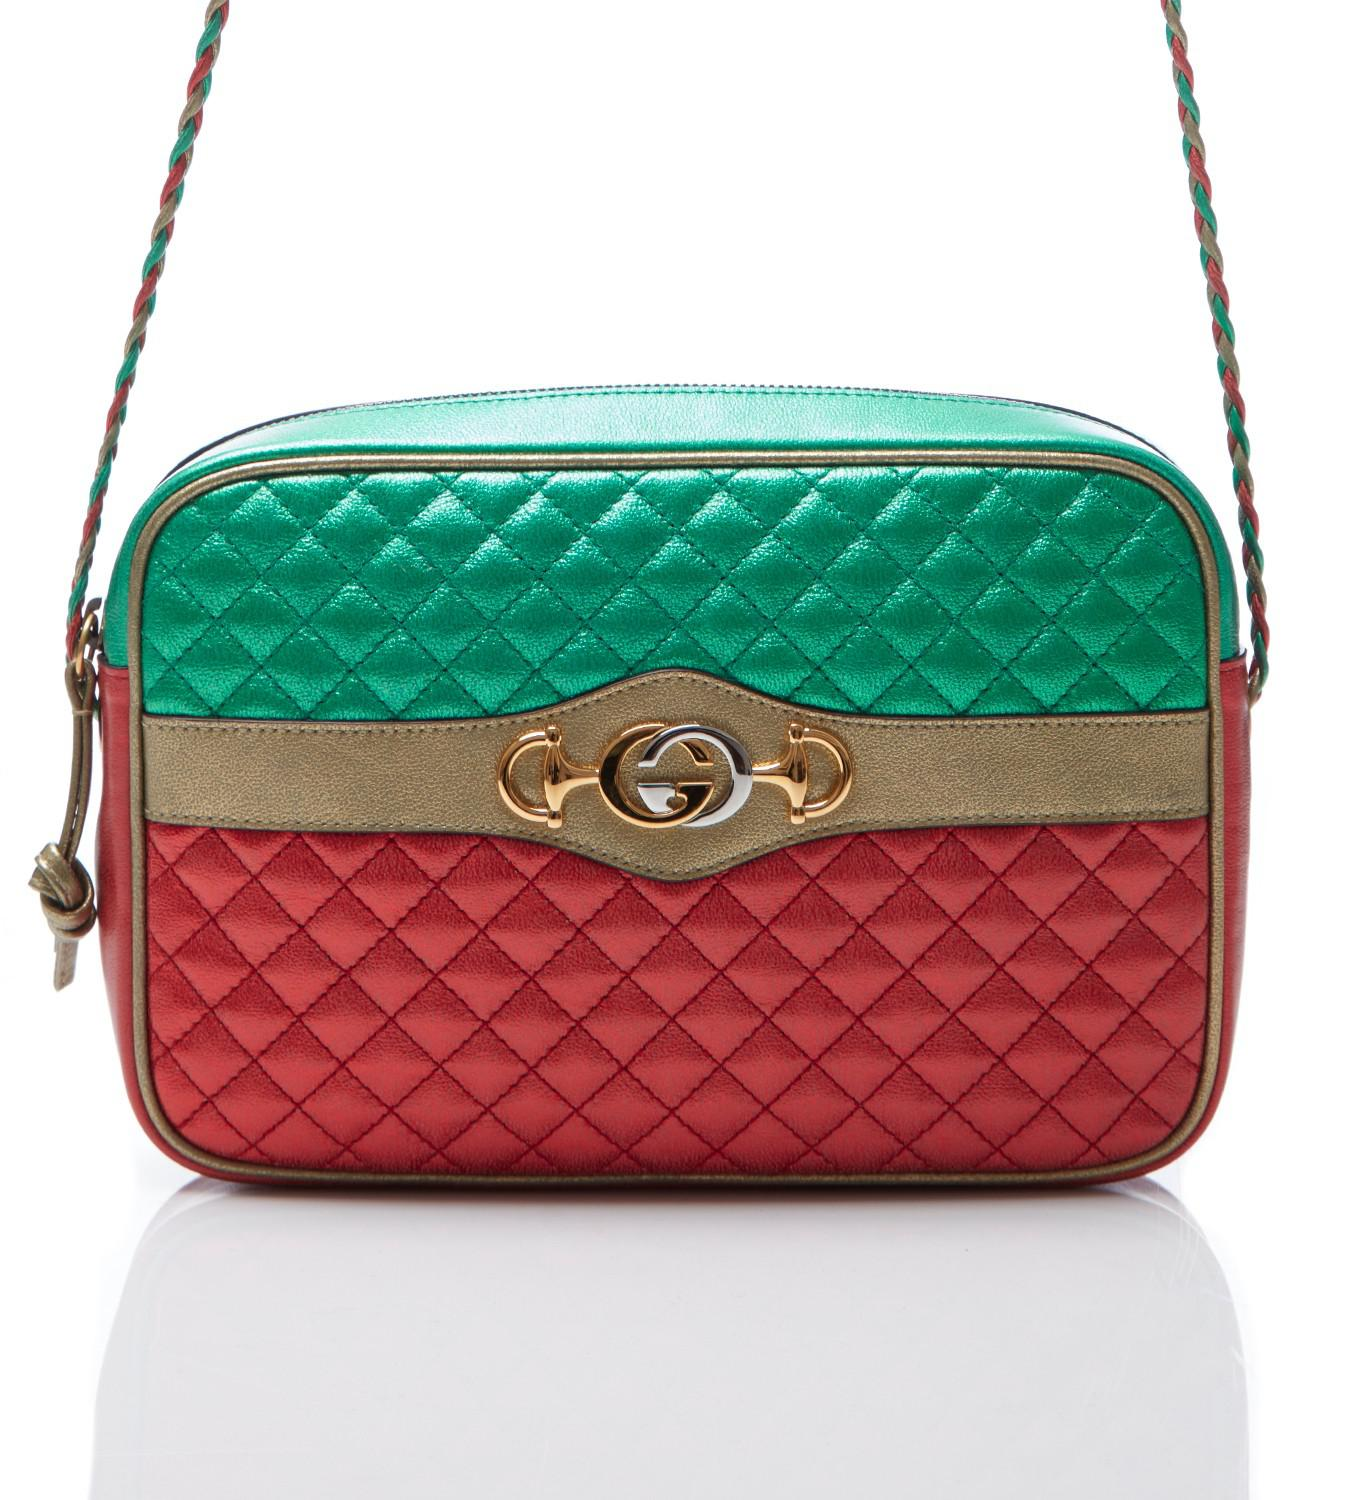 Gucci Women S Red Green Laminated Quilted Handbag